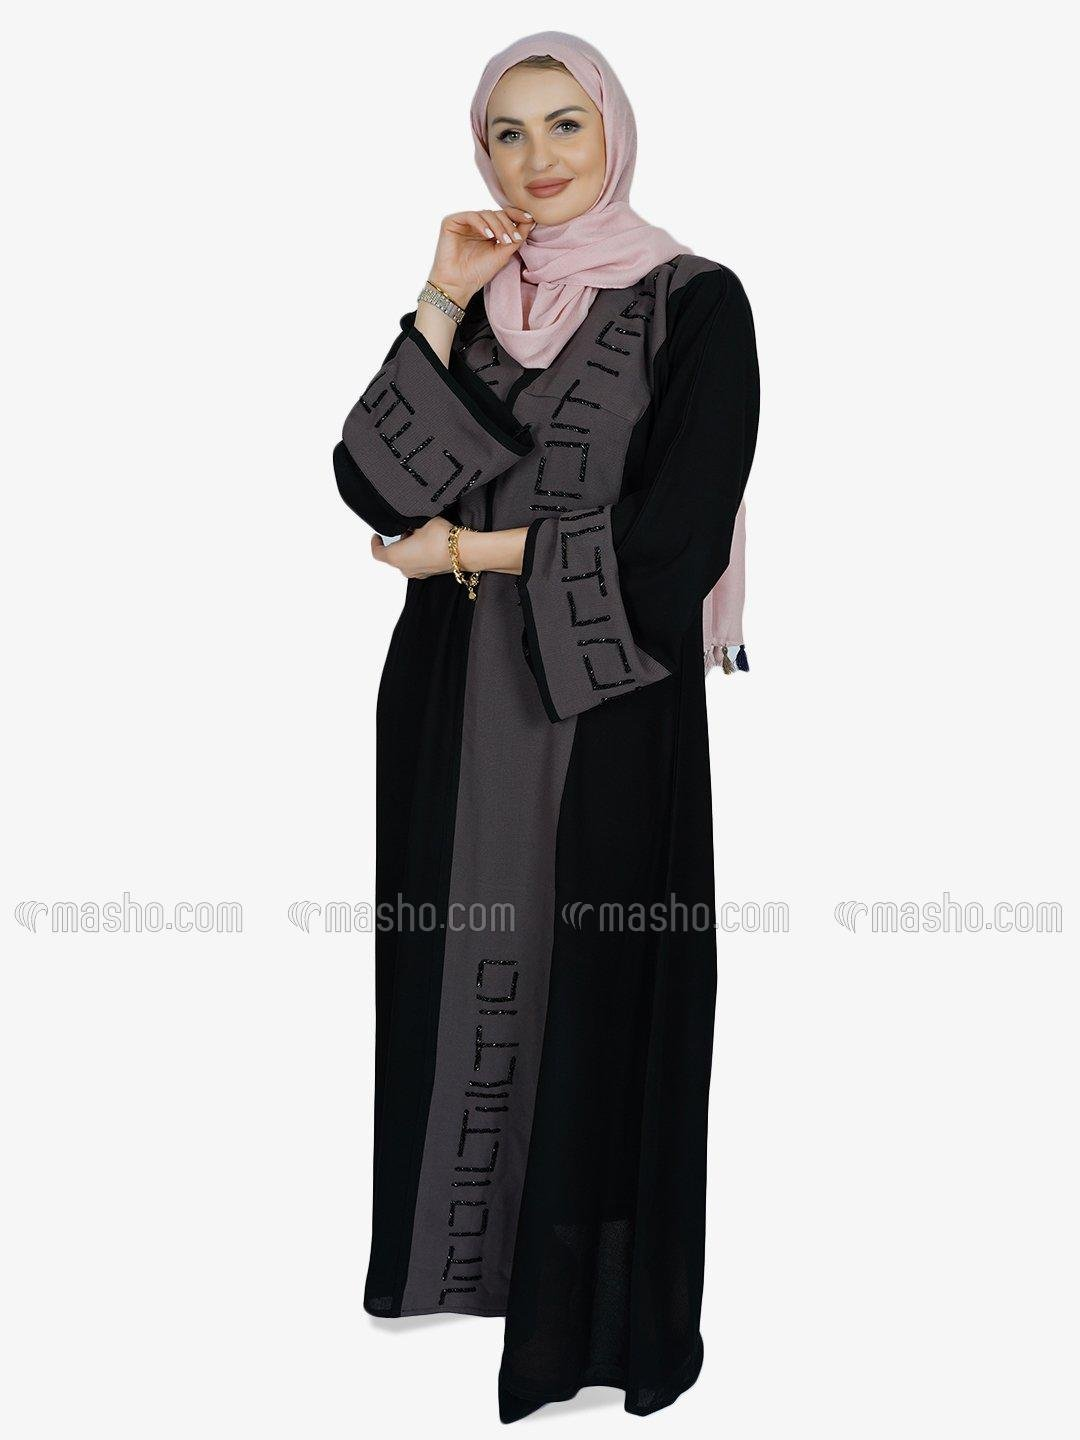 Korean Masha Crepe Free Size Abaya With Crystal Hand Work On Front And Sleeve In Black And Coffee